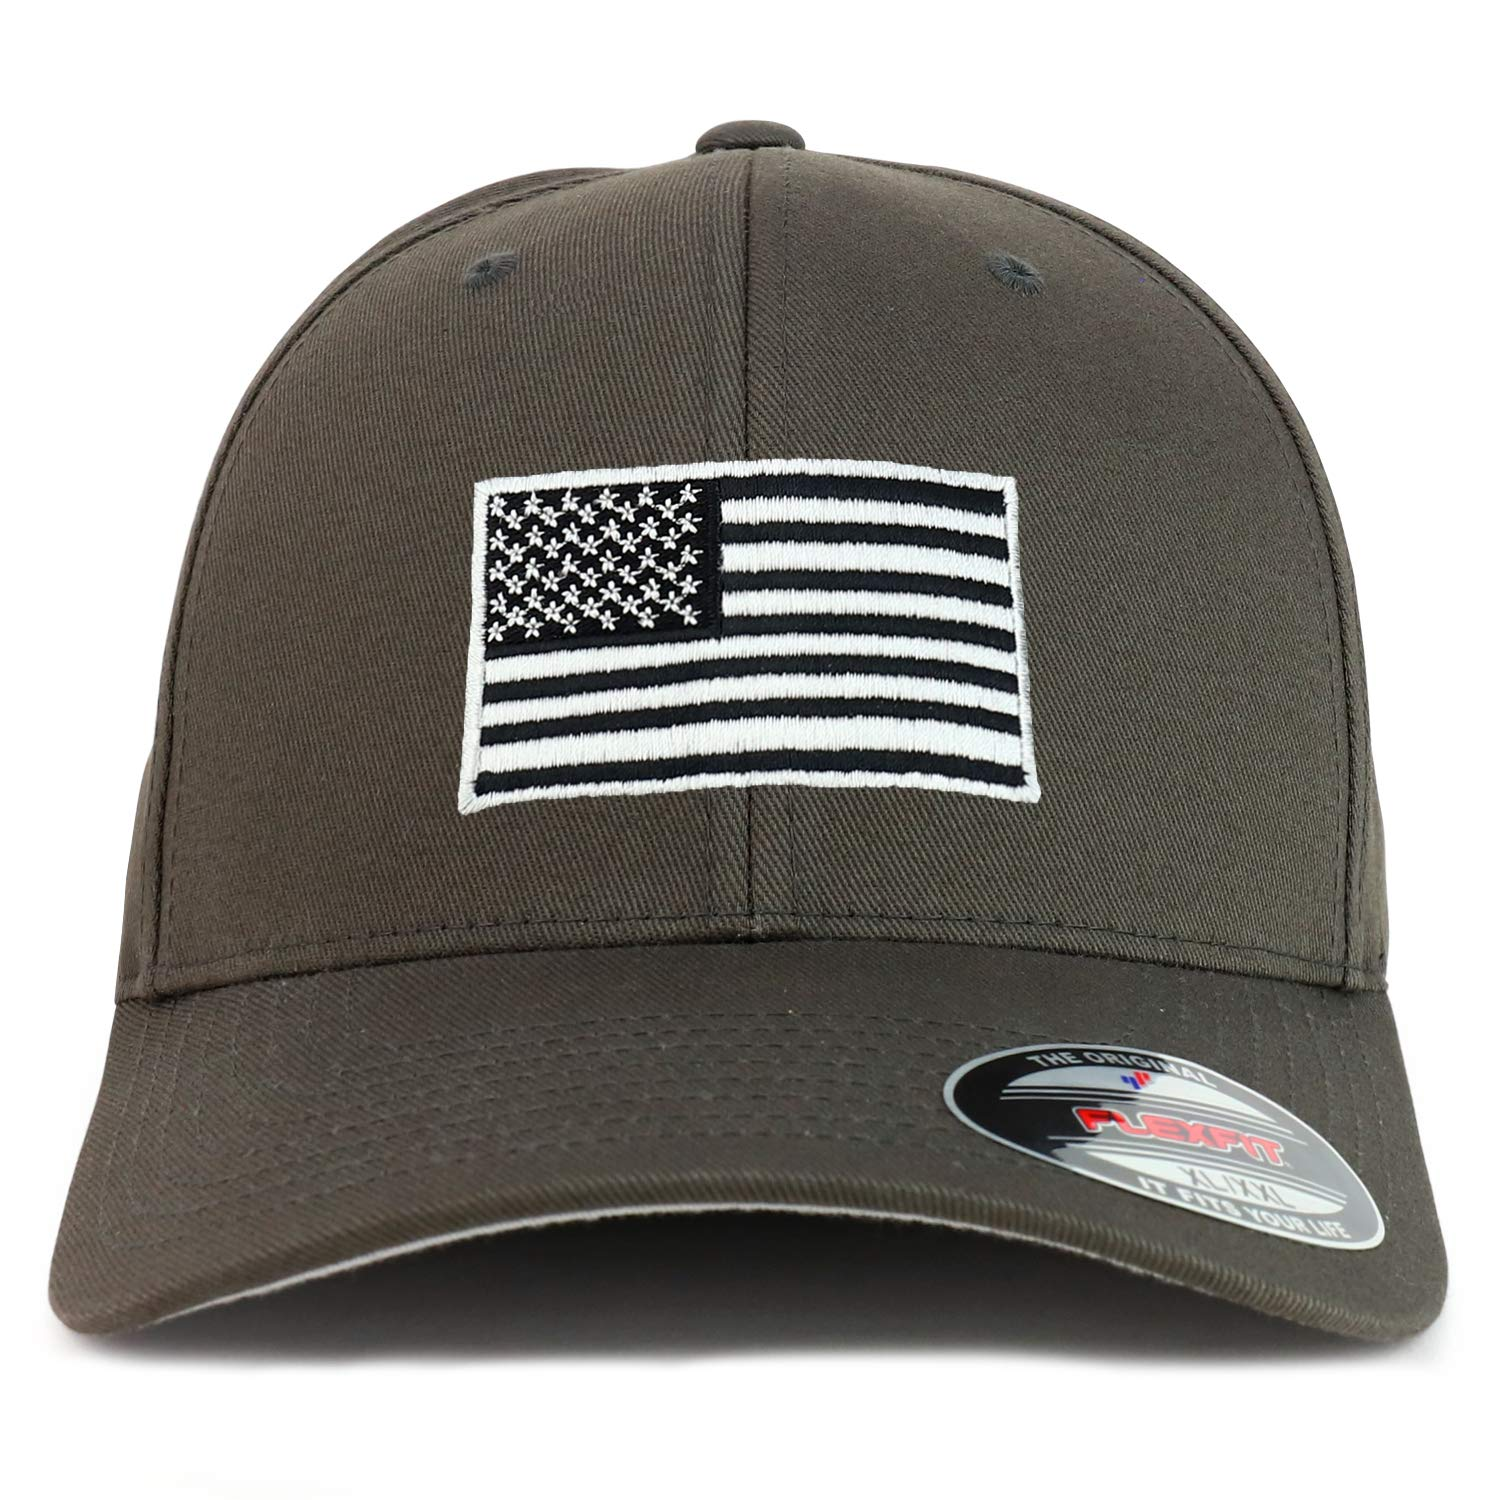 Armycrew USA American Flag Embroidered Flexfit Cap Fits Up to XXL